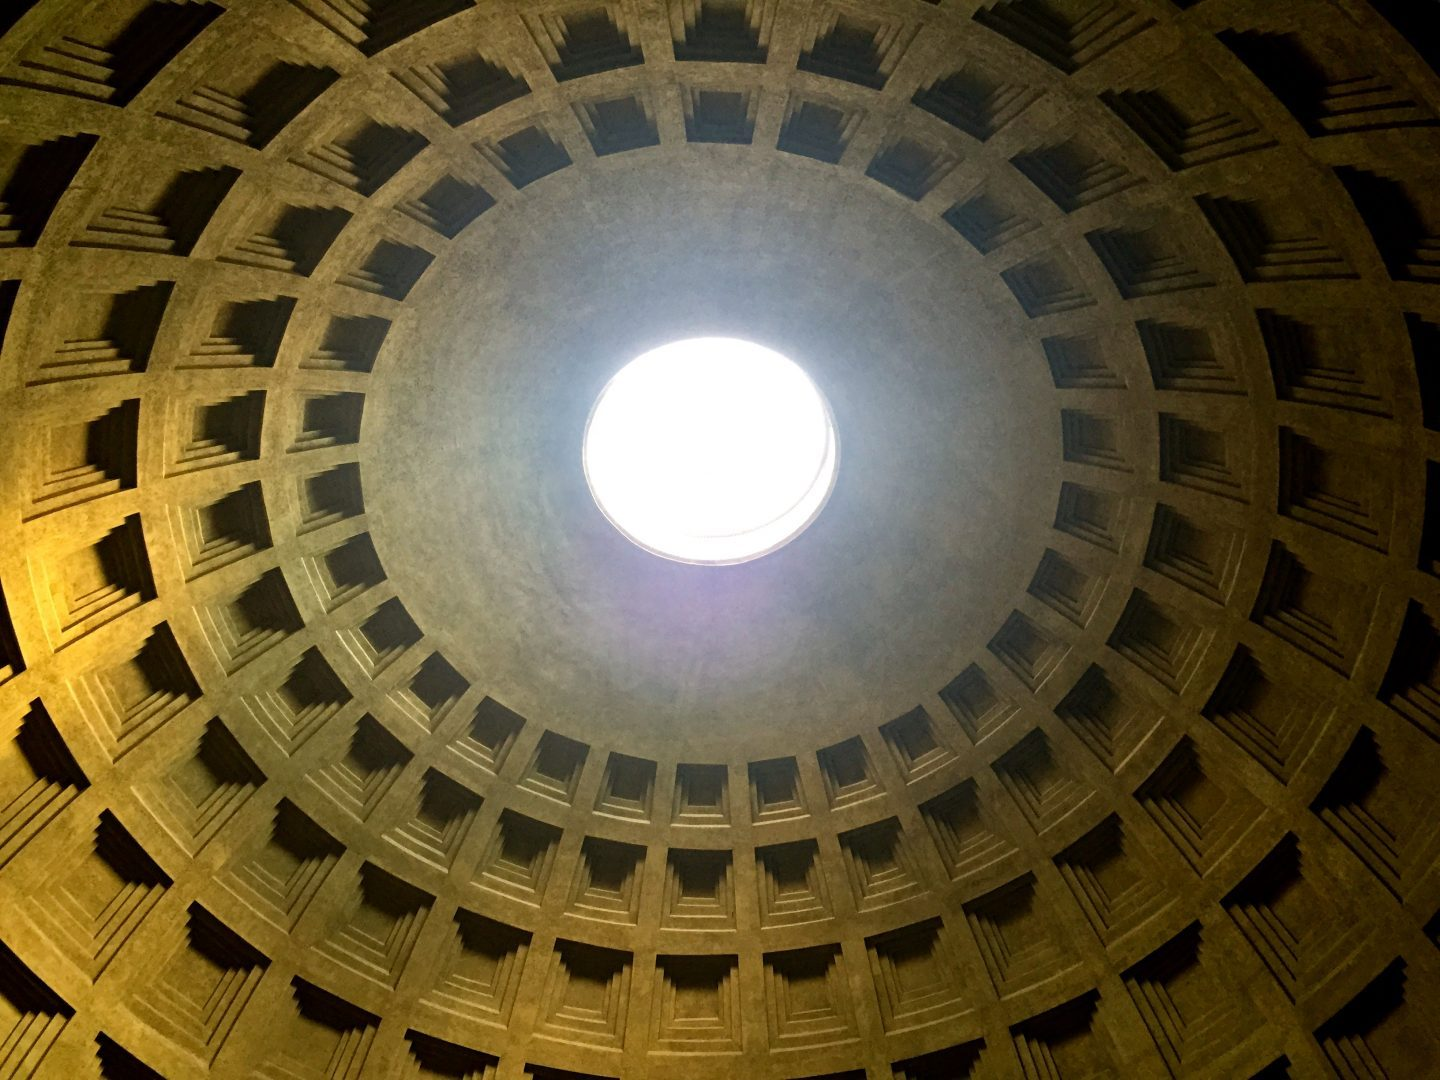 Looking up at the Pantheon in Rome.